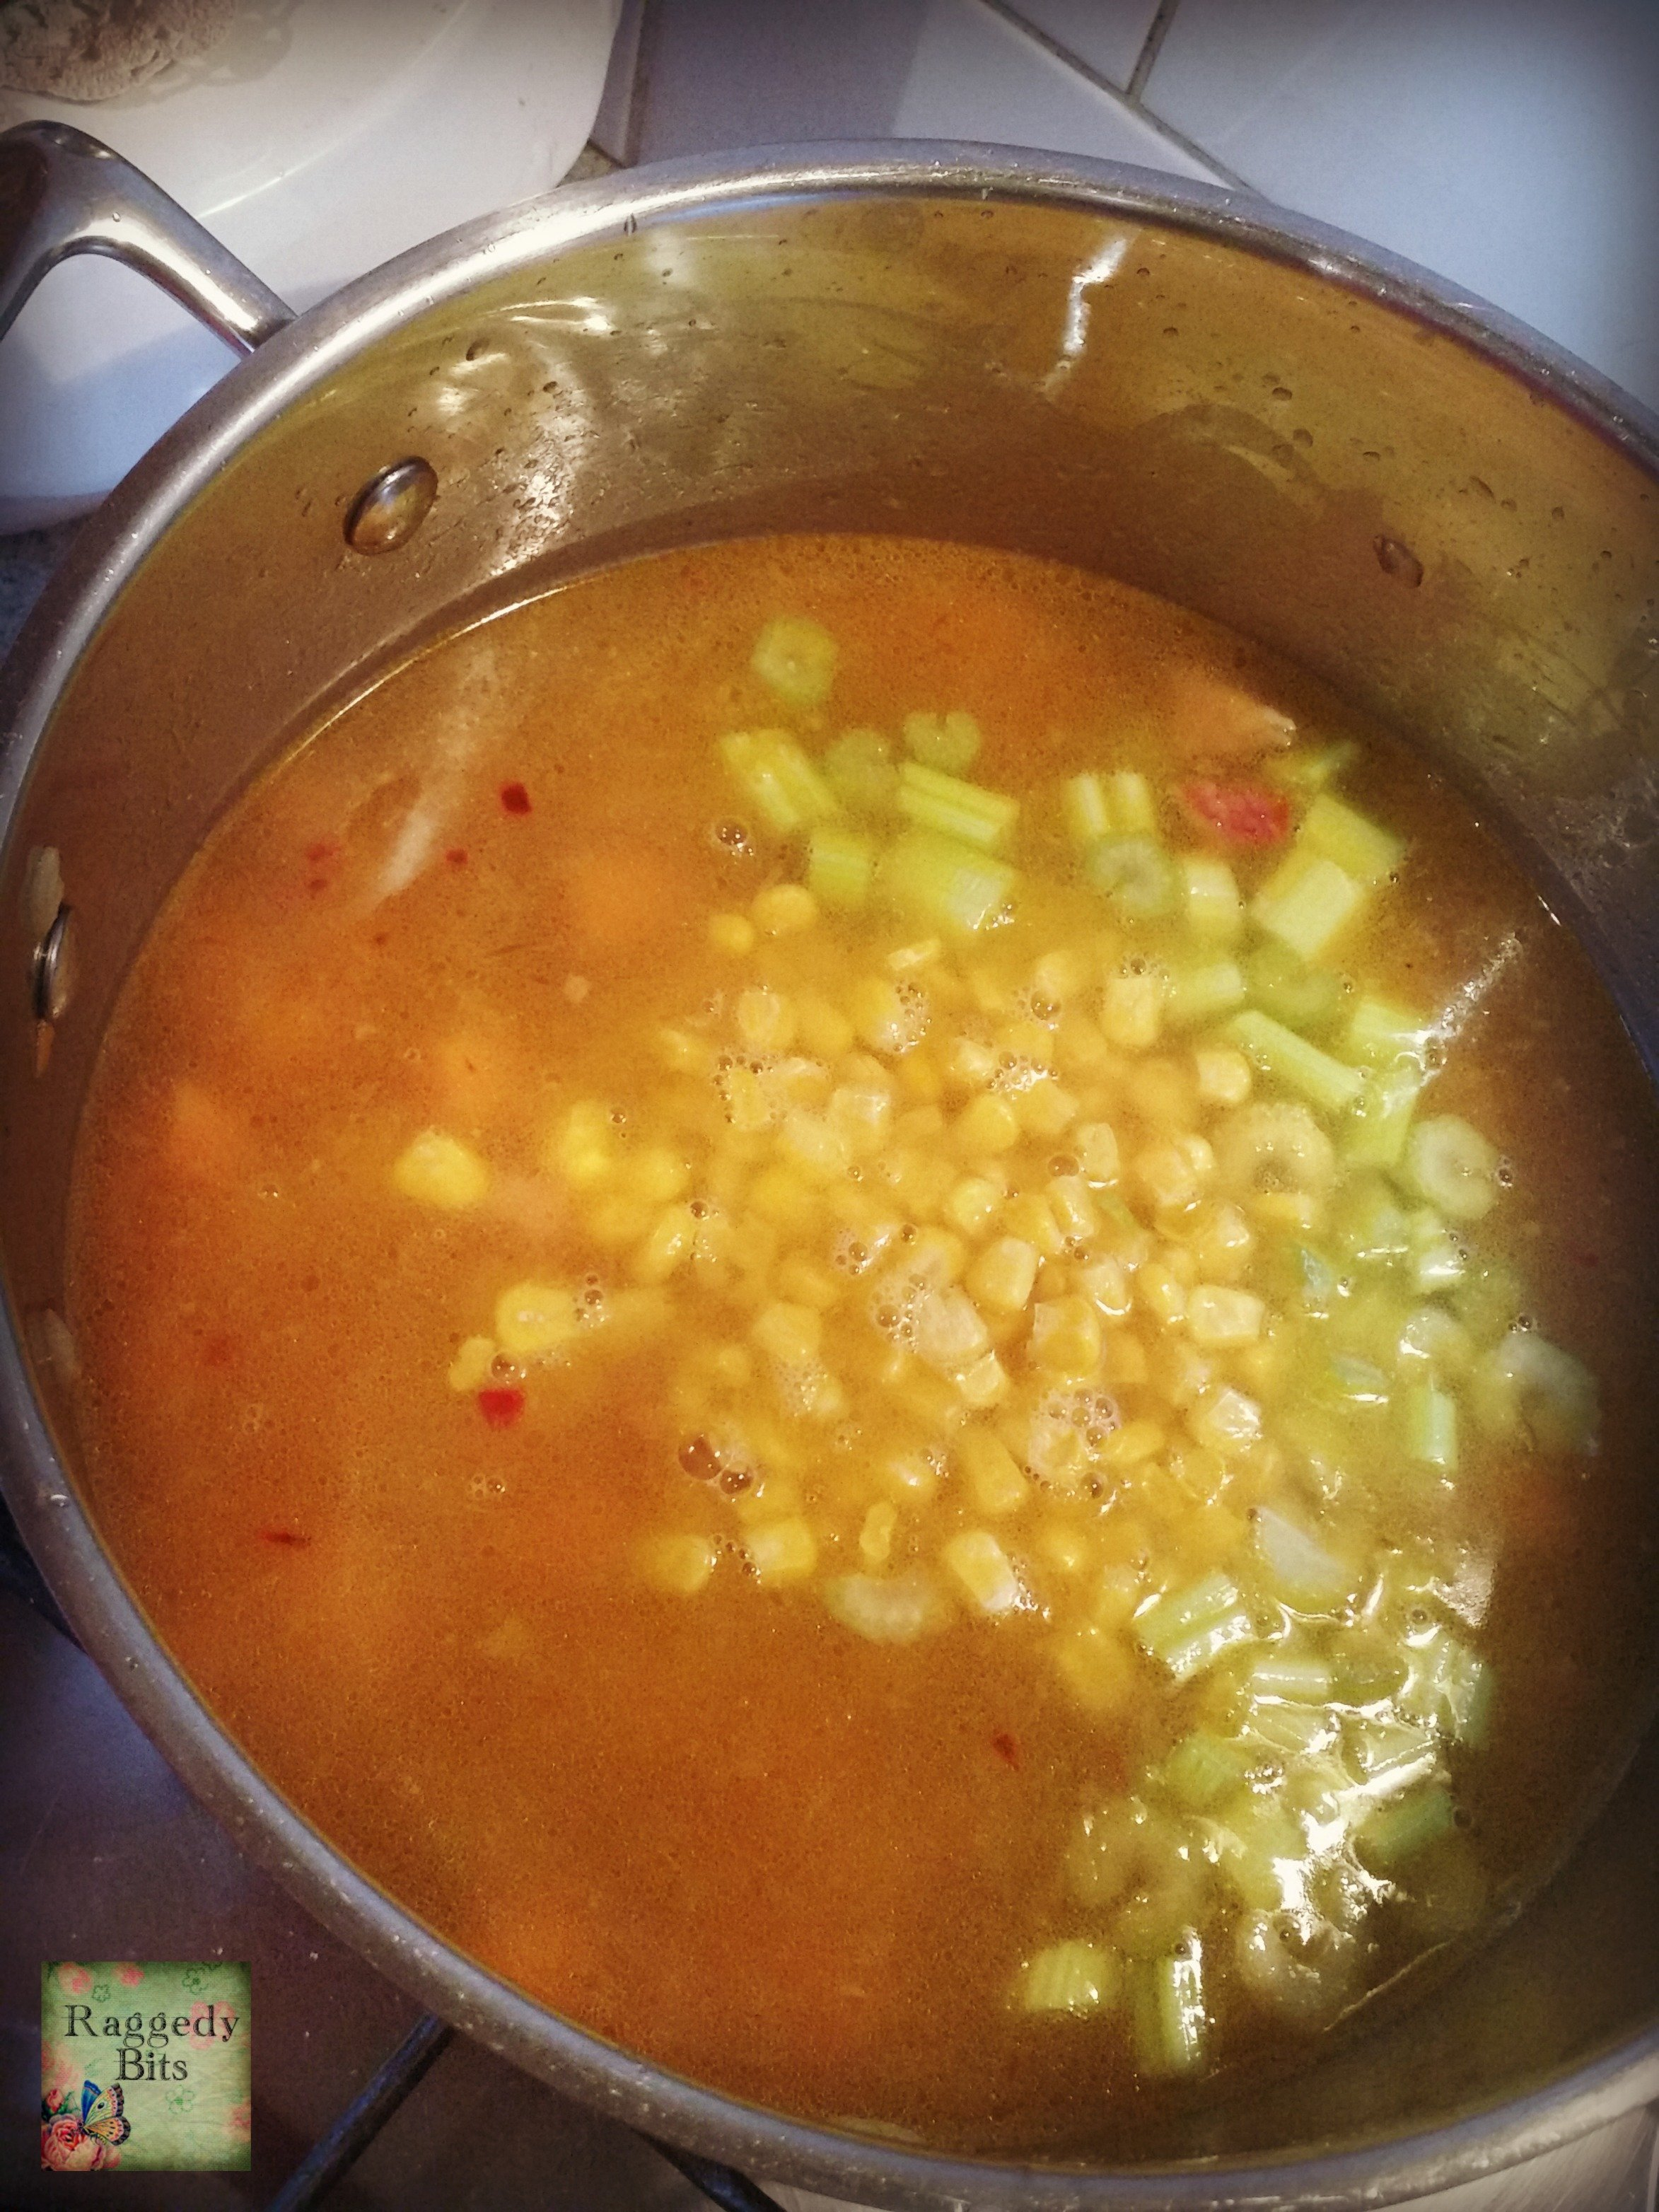 Recipe for Scrumptious Ham and Vegetable Soup |www.raggedy-bits.com